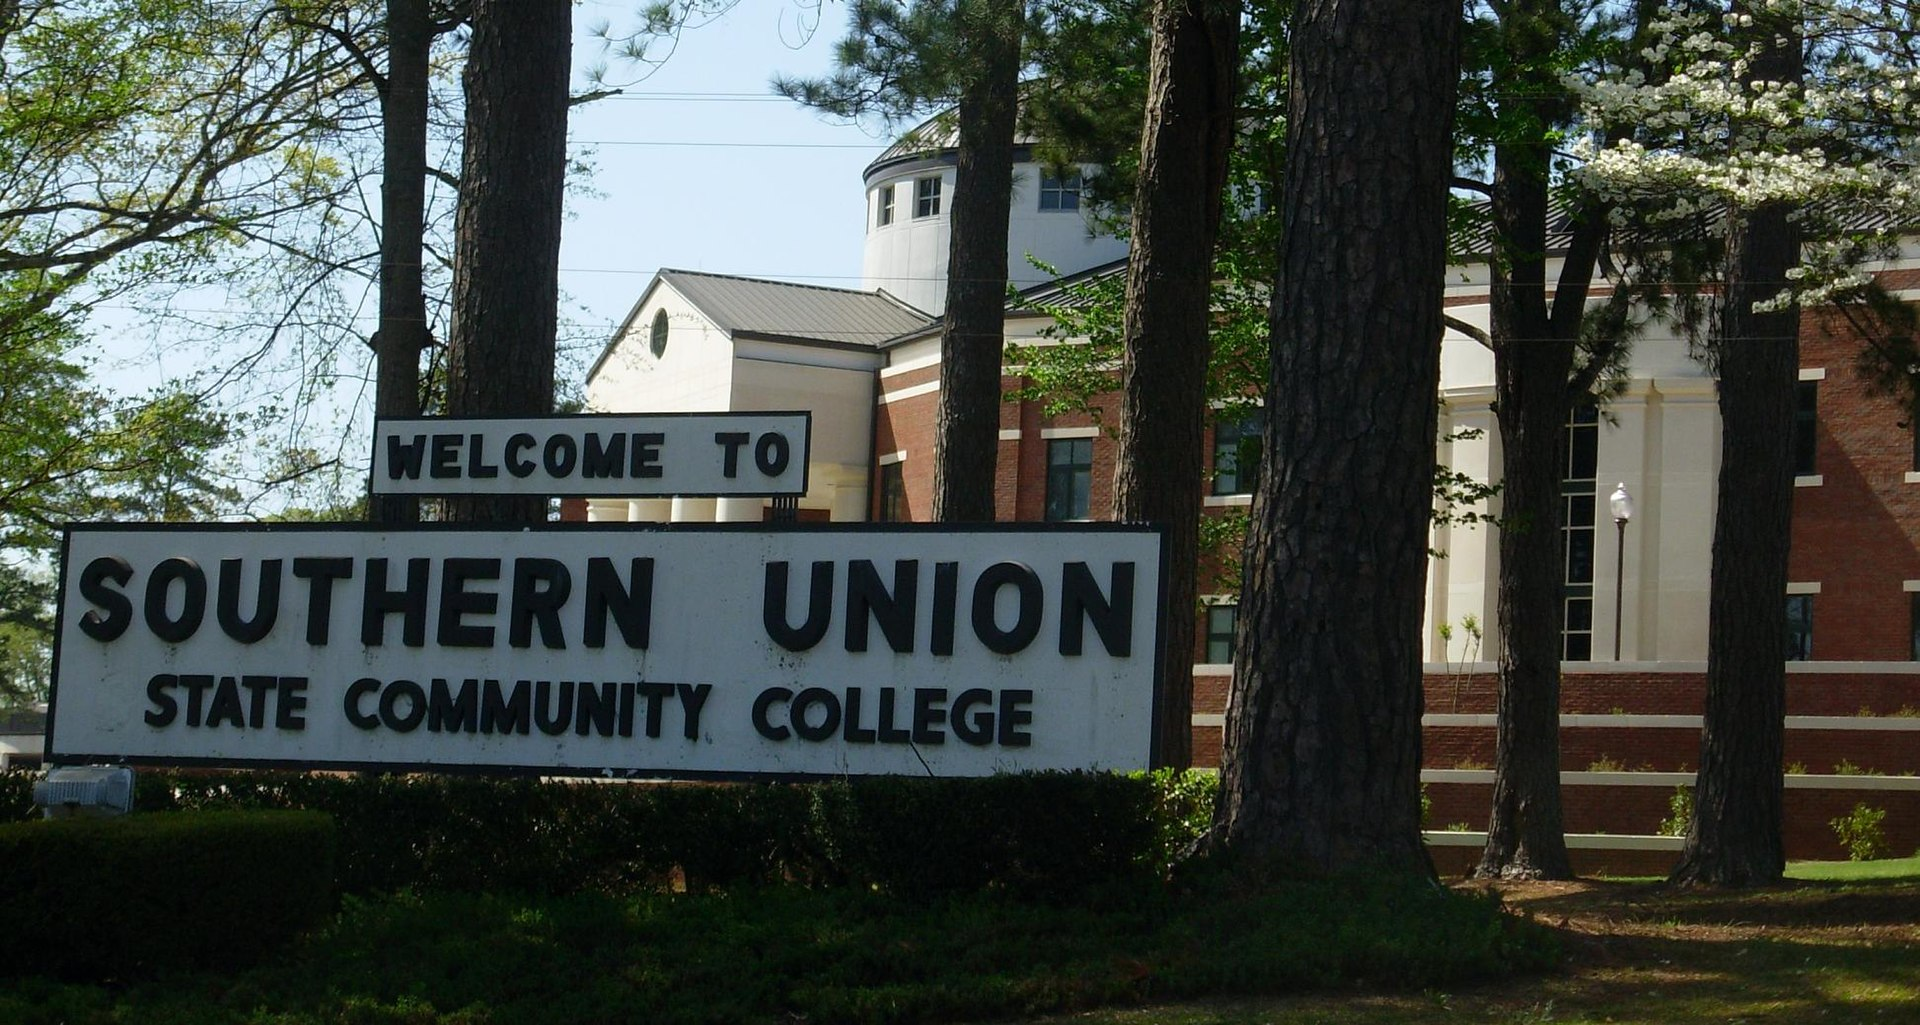 Southern Union State Community College Wikipedia